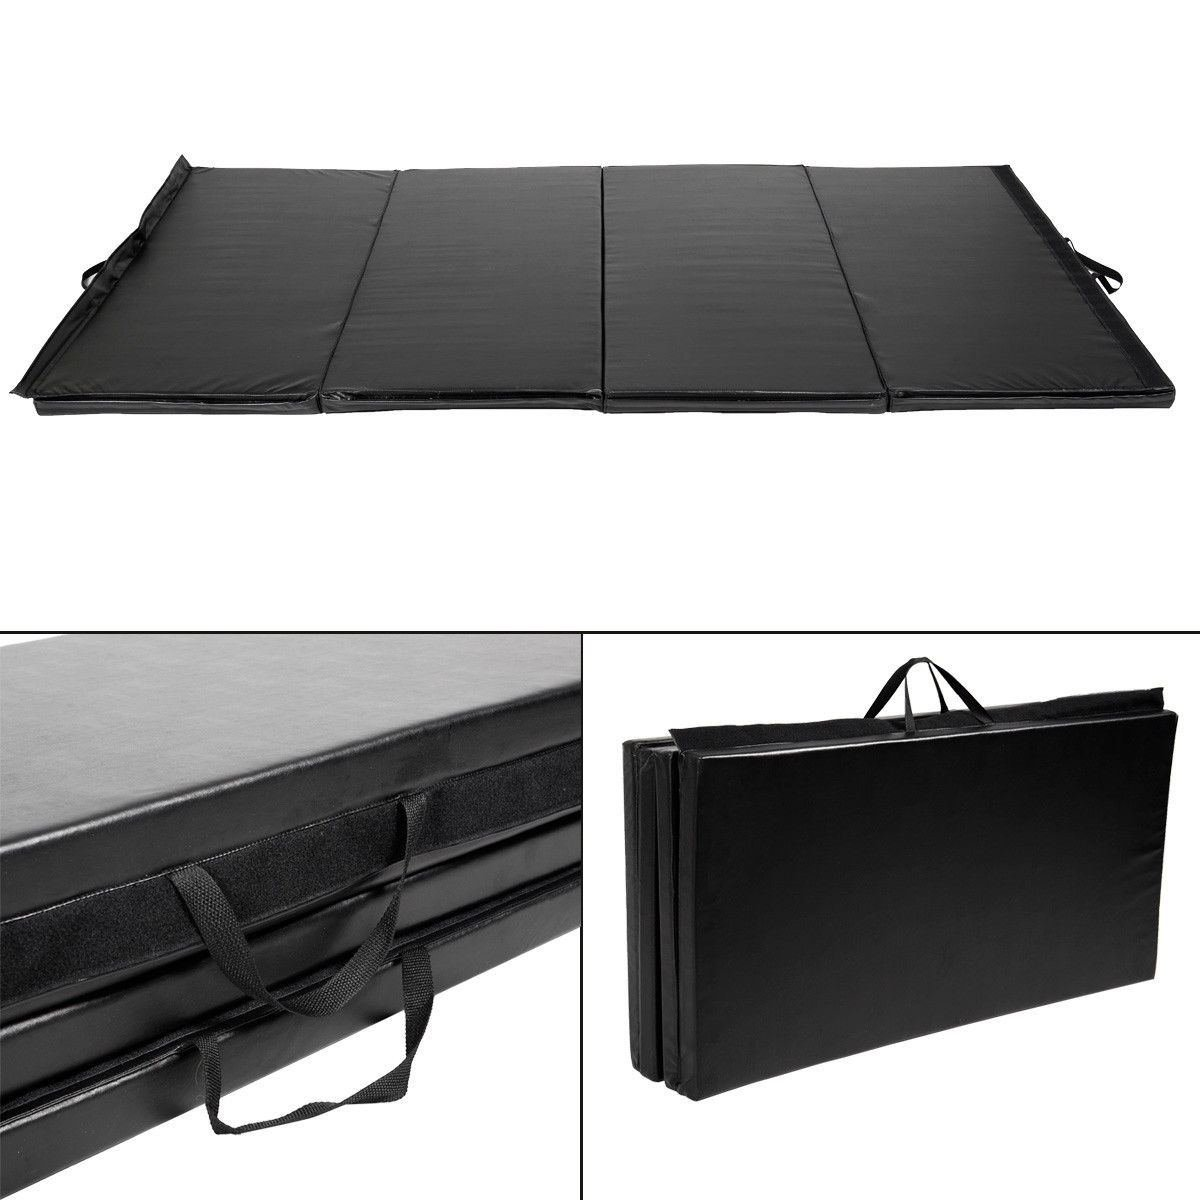 New Black 4'x8'x2'' Thick Folding Panel Gymnastics Mat Gym Fitness Exercise Mat by Yoga Mats